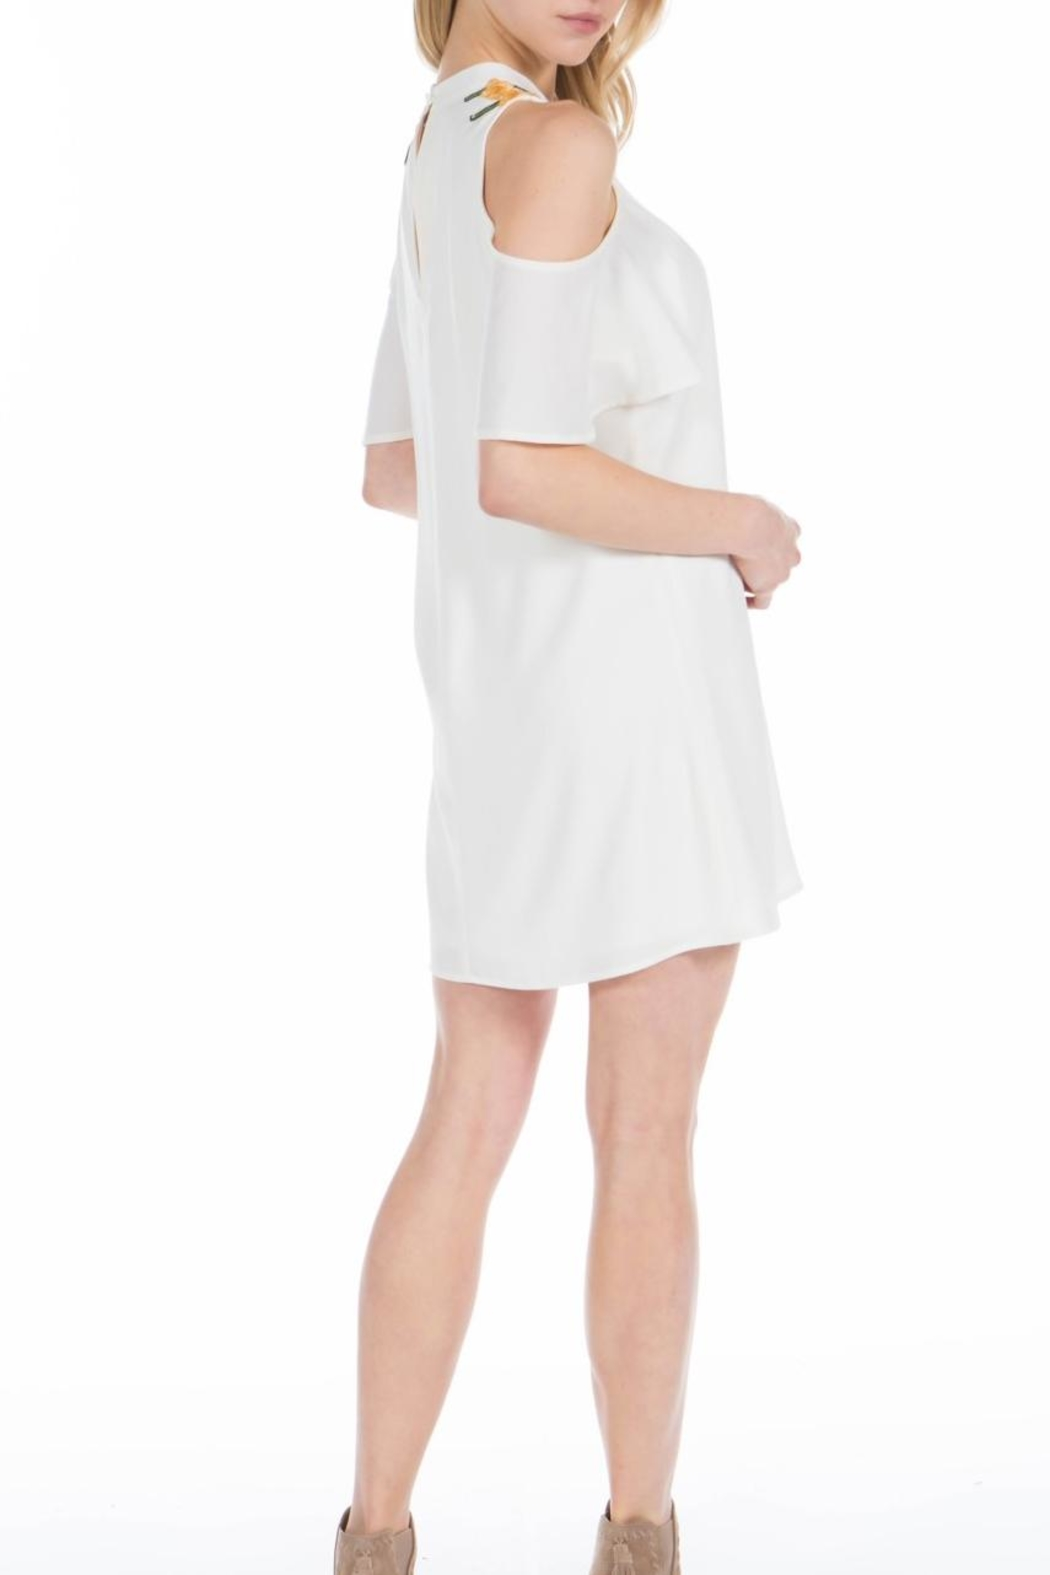 PPLA Clothing Ophelia Cold Shoulder Dress - Front Full Image